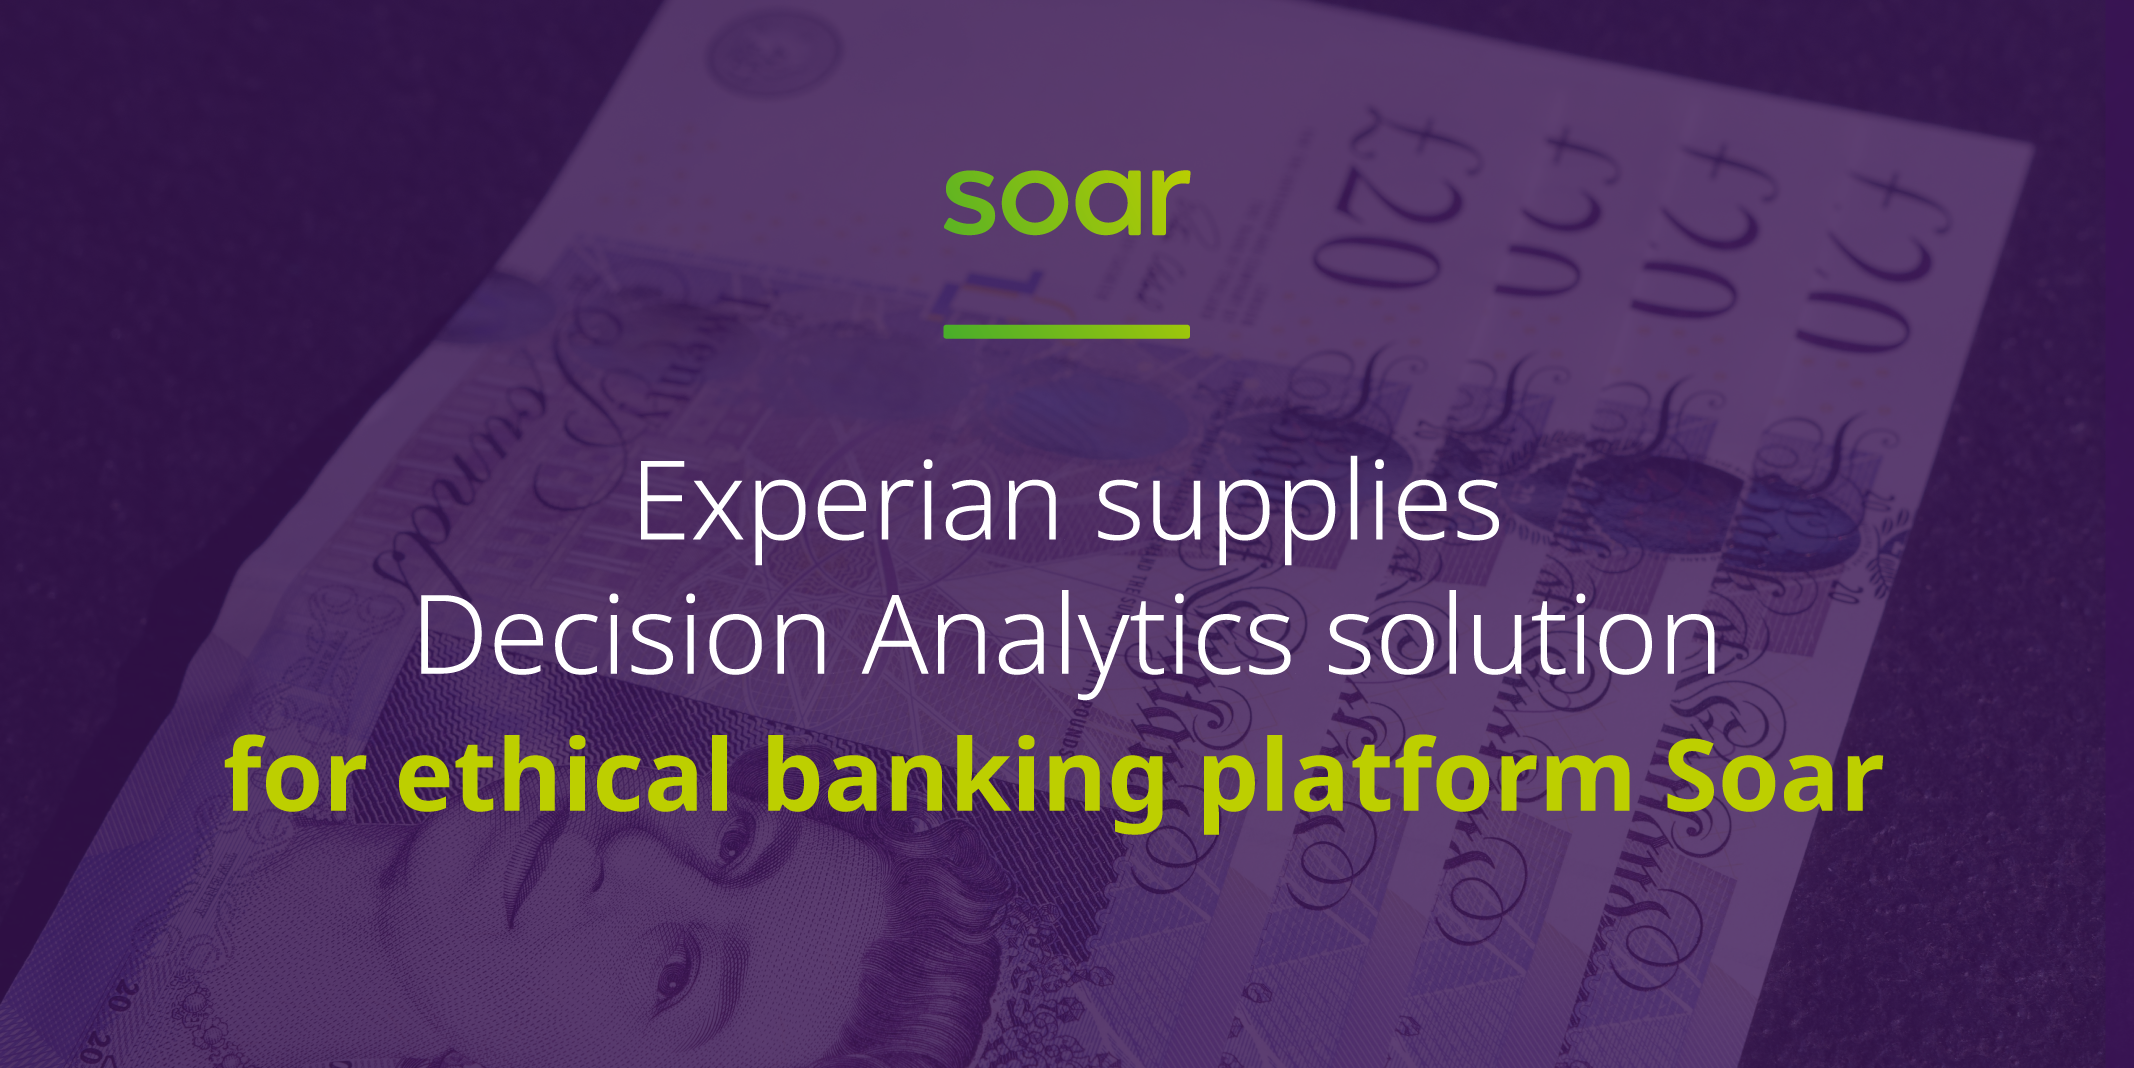 Experian supplies Decision Analytics solution